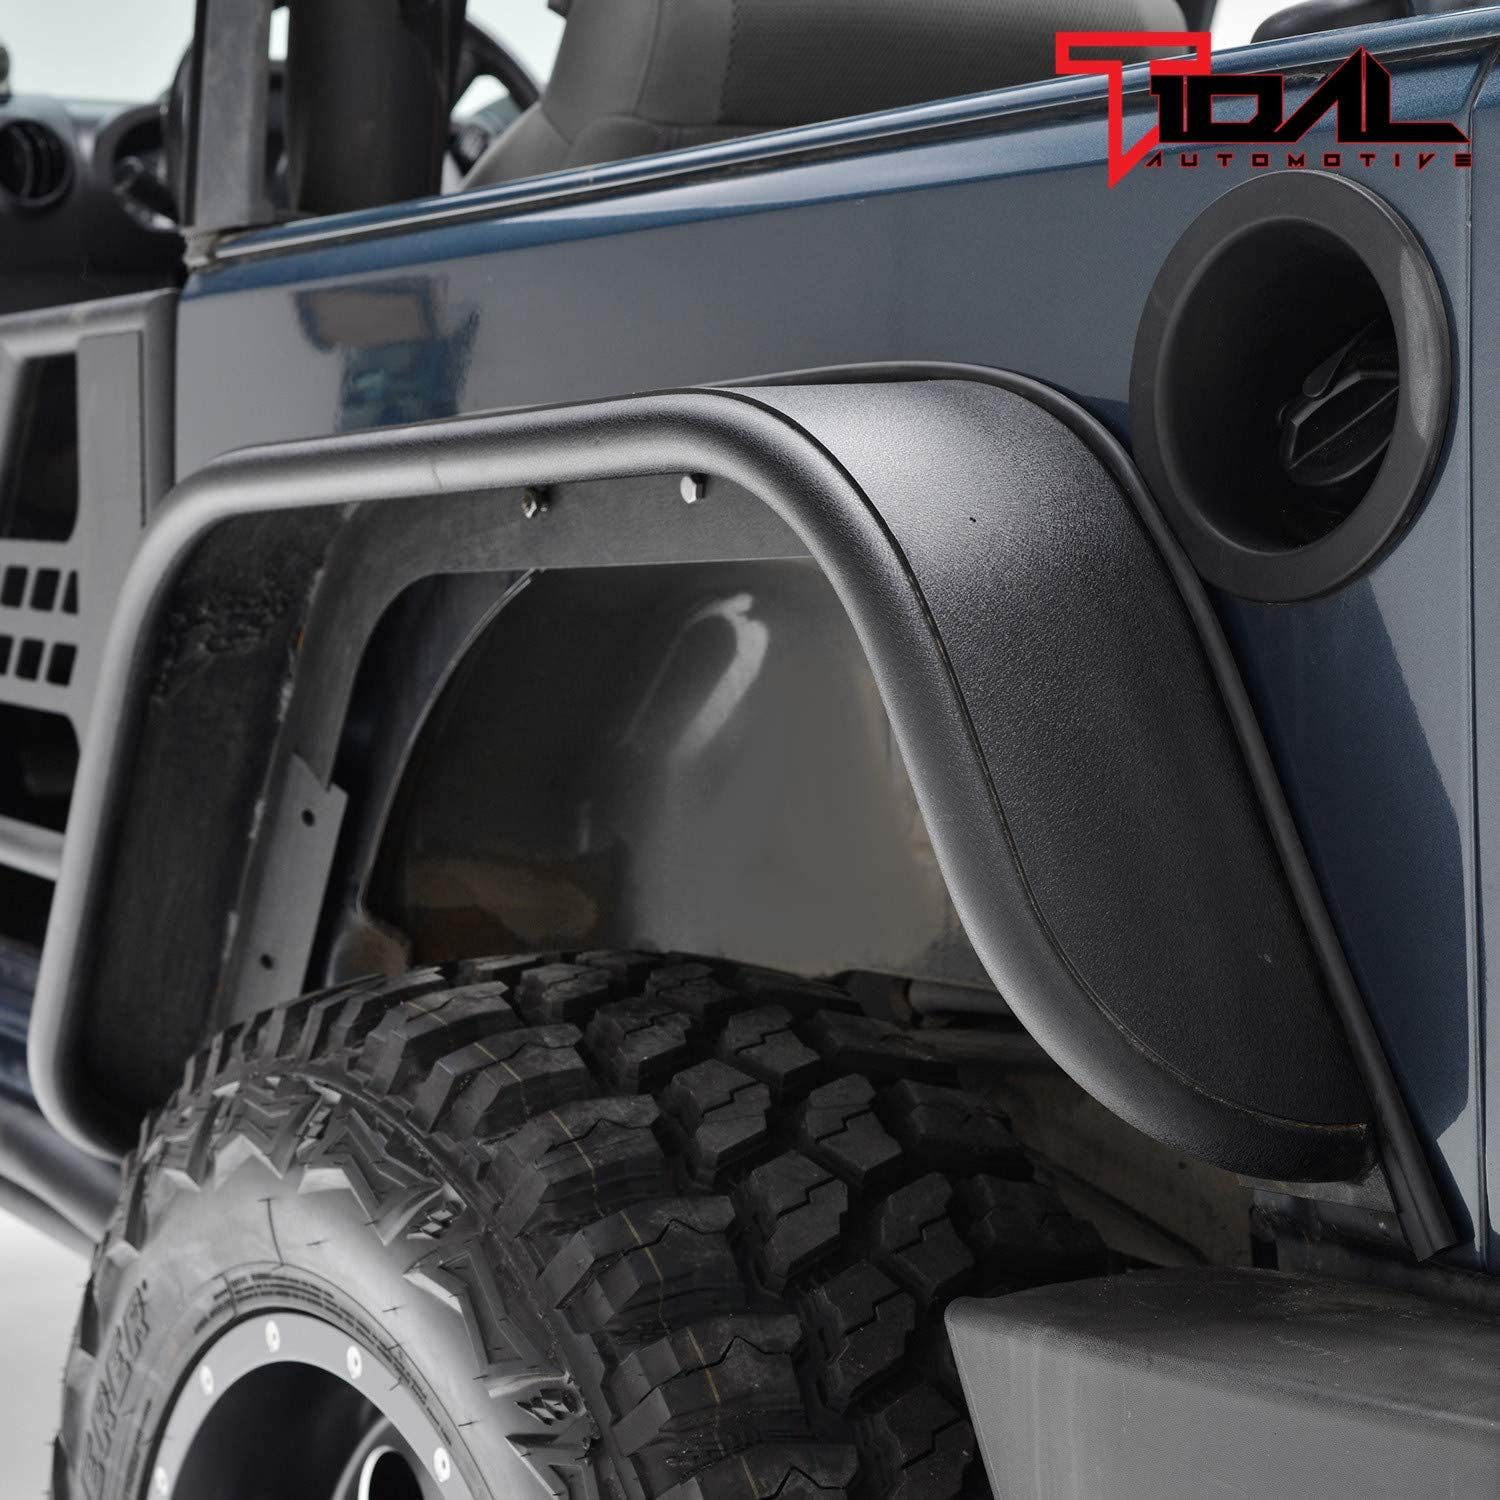 Amazon Com Tidal Rear Fender Flares Flat Styles Steel Fit For 07 18 Wrangler Jk Automotive